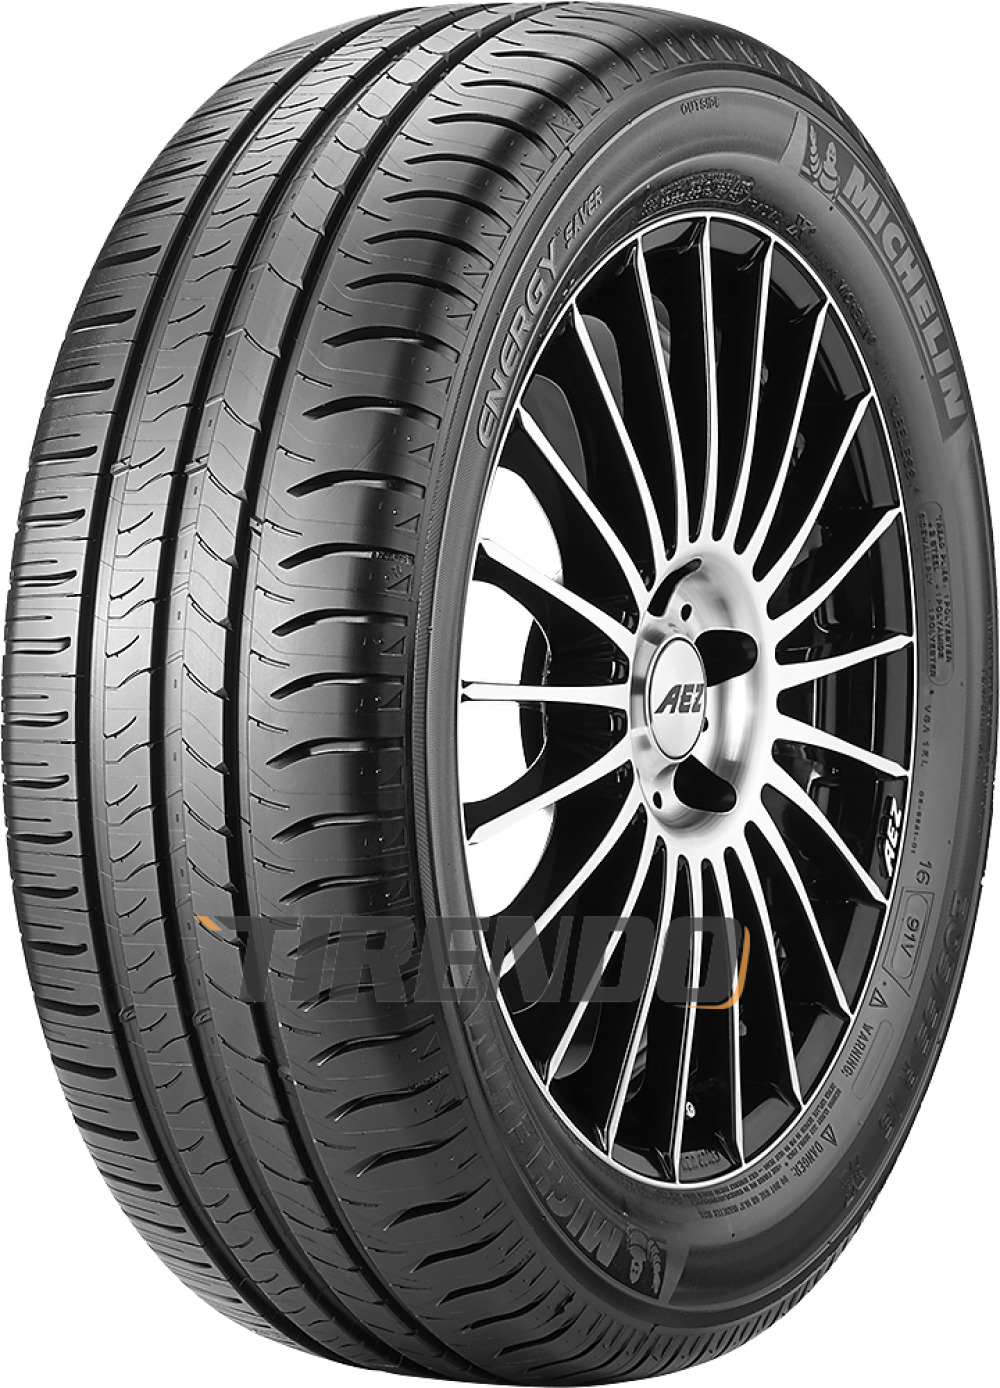 Michelin Energy Saver ( 195/65 R15 91H MO, GRNX )